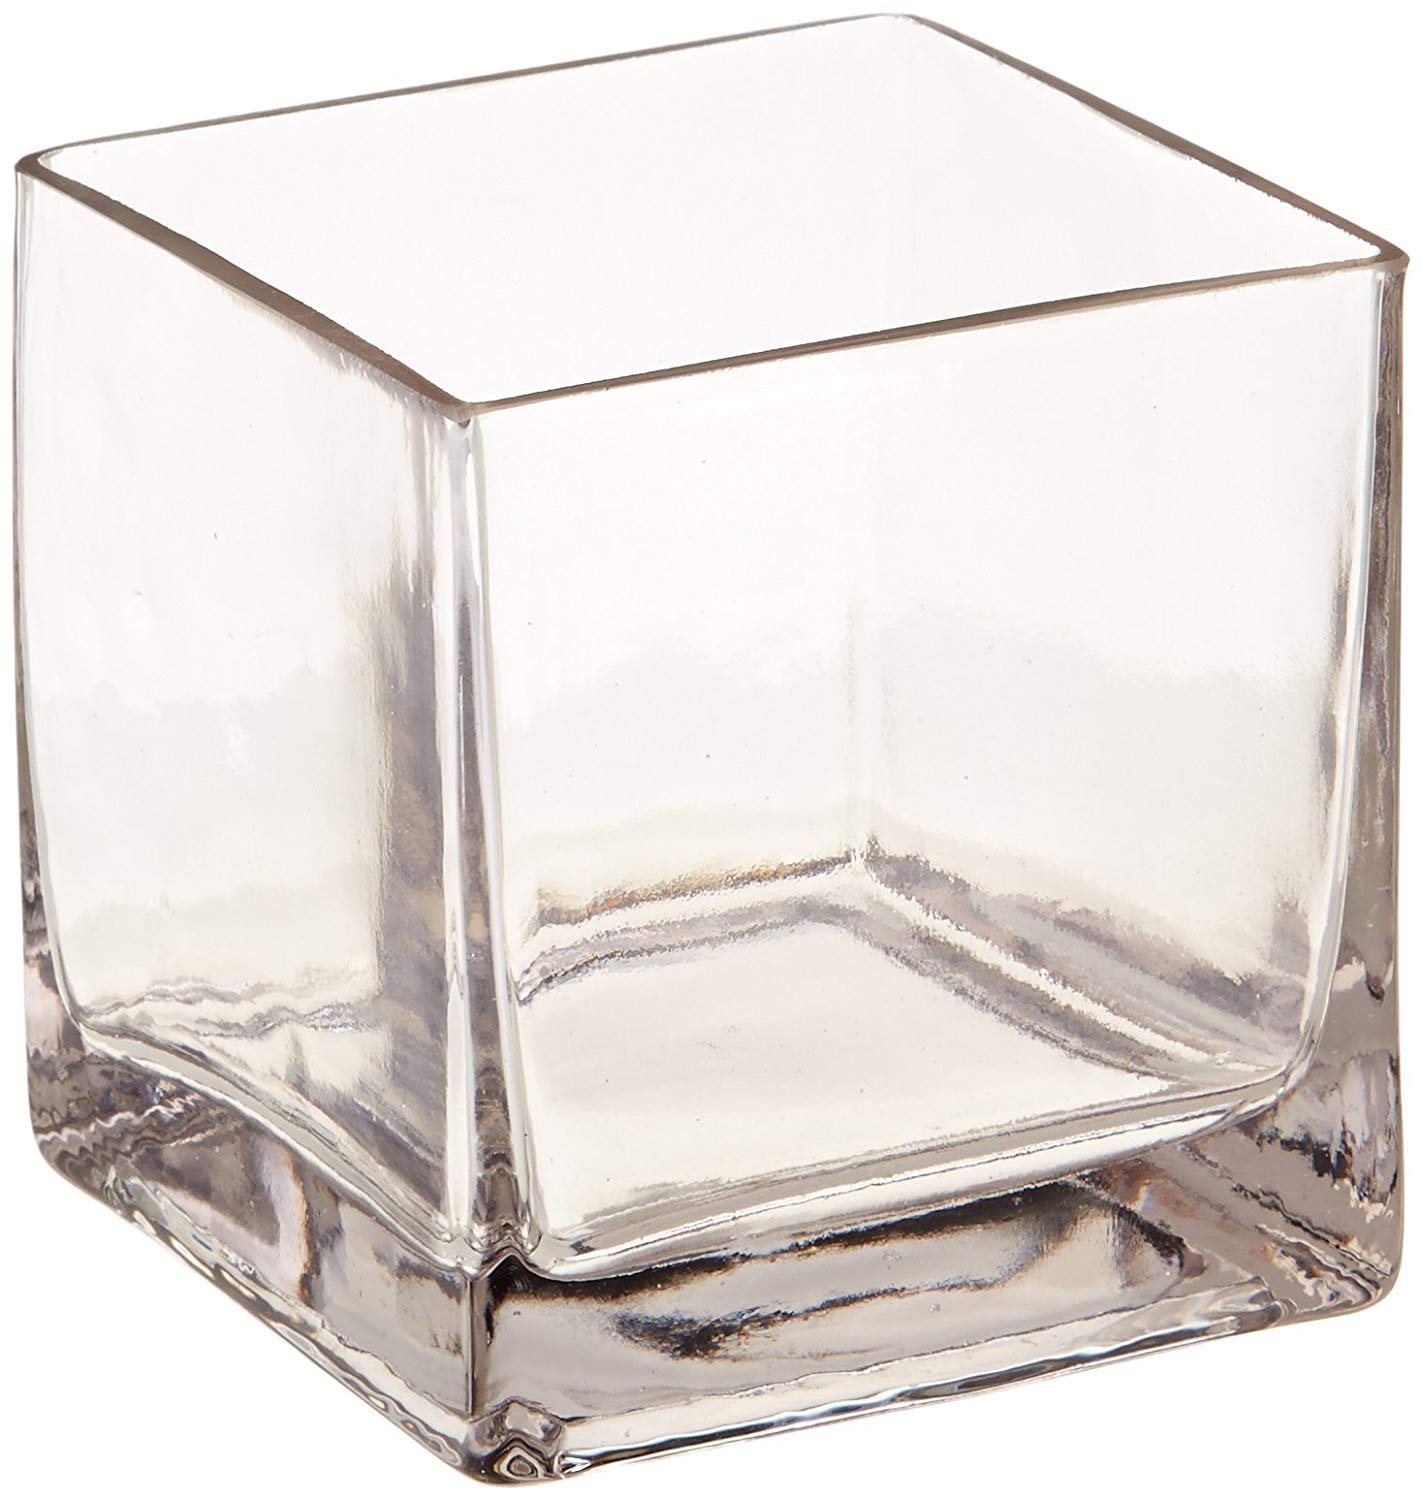 large clear round vase of amazon com 12piece 4 square crystal clear glass vase home kitchen regarding 71 jezfmvnl sl1500